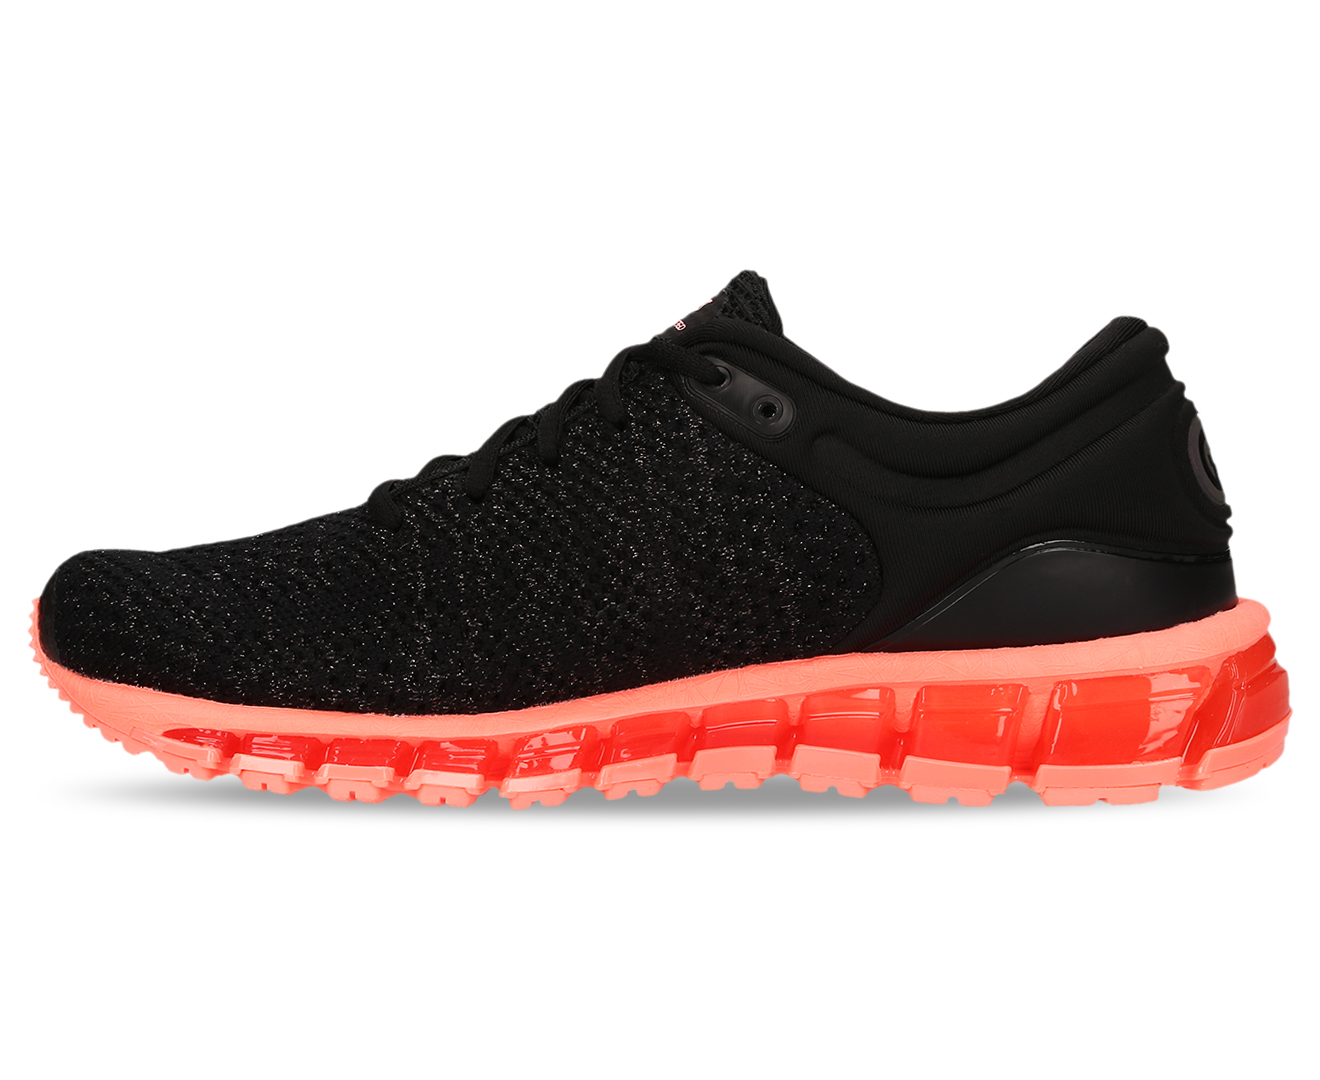 detailed look c1eb2 53de7 ASICS Women's GEL-Quantum 360 Knit 2 Shoe - Black/Sun Coral